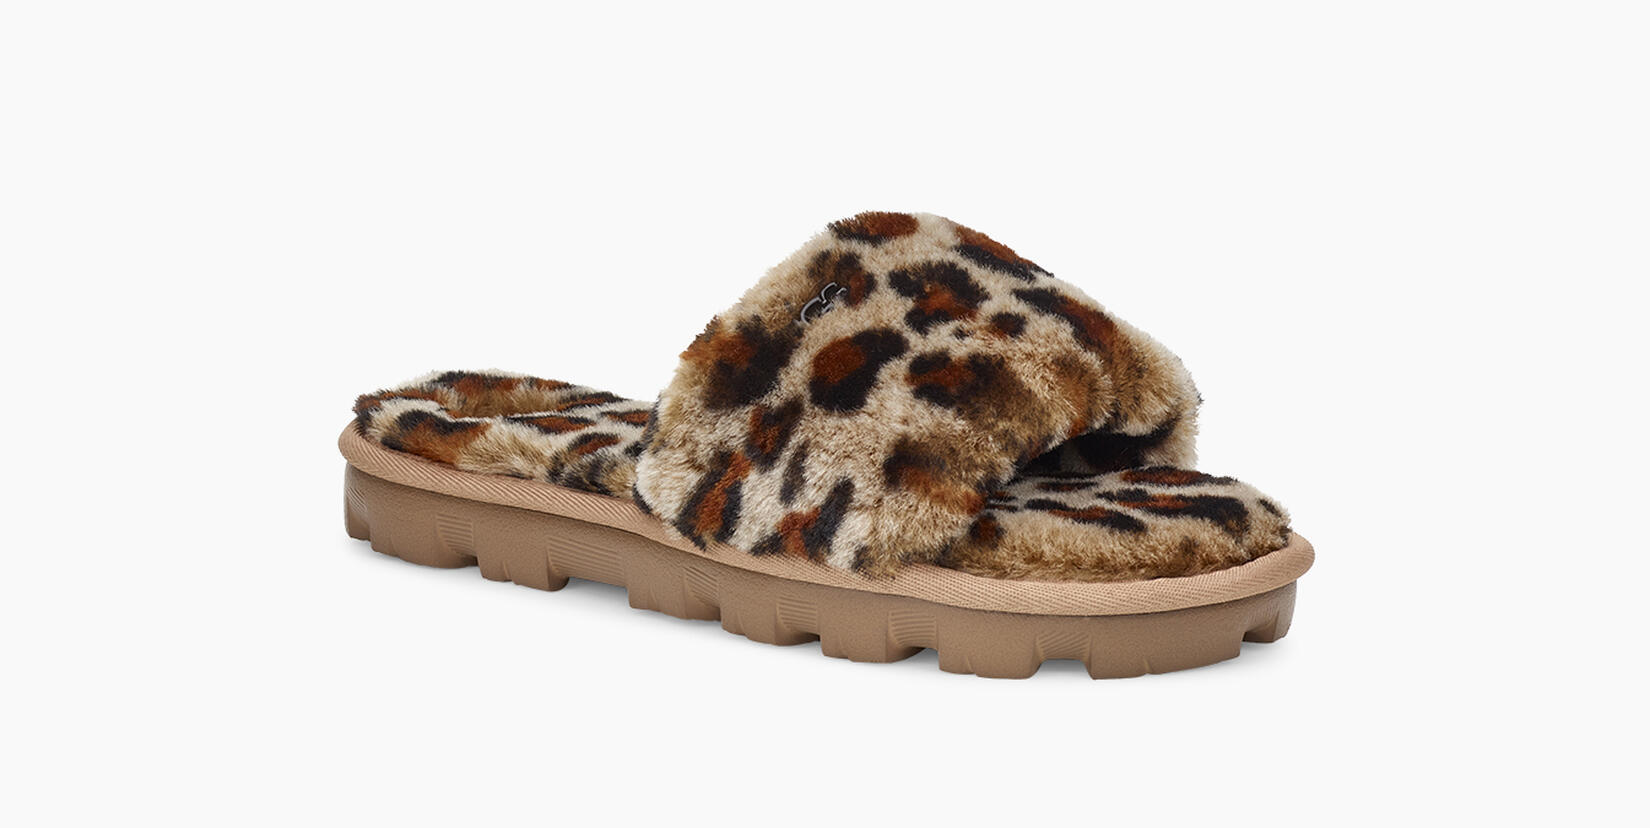 Cozette Leopard Slipper